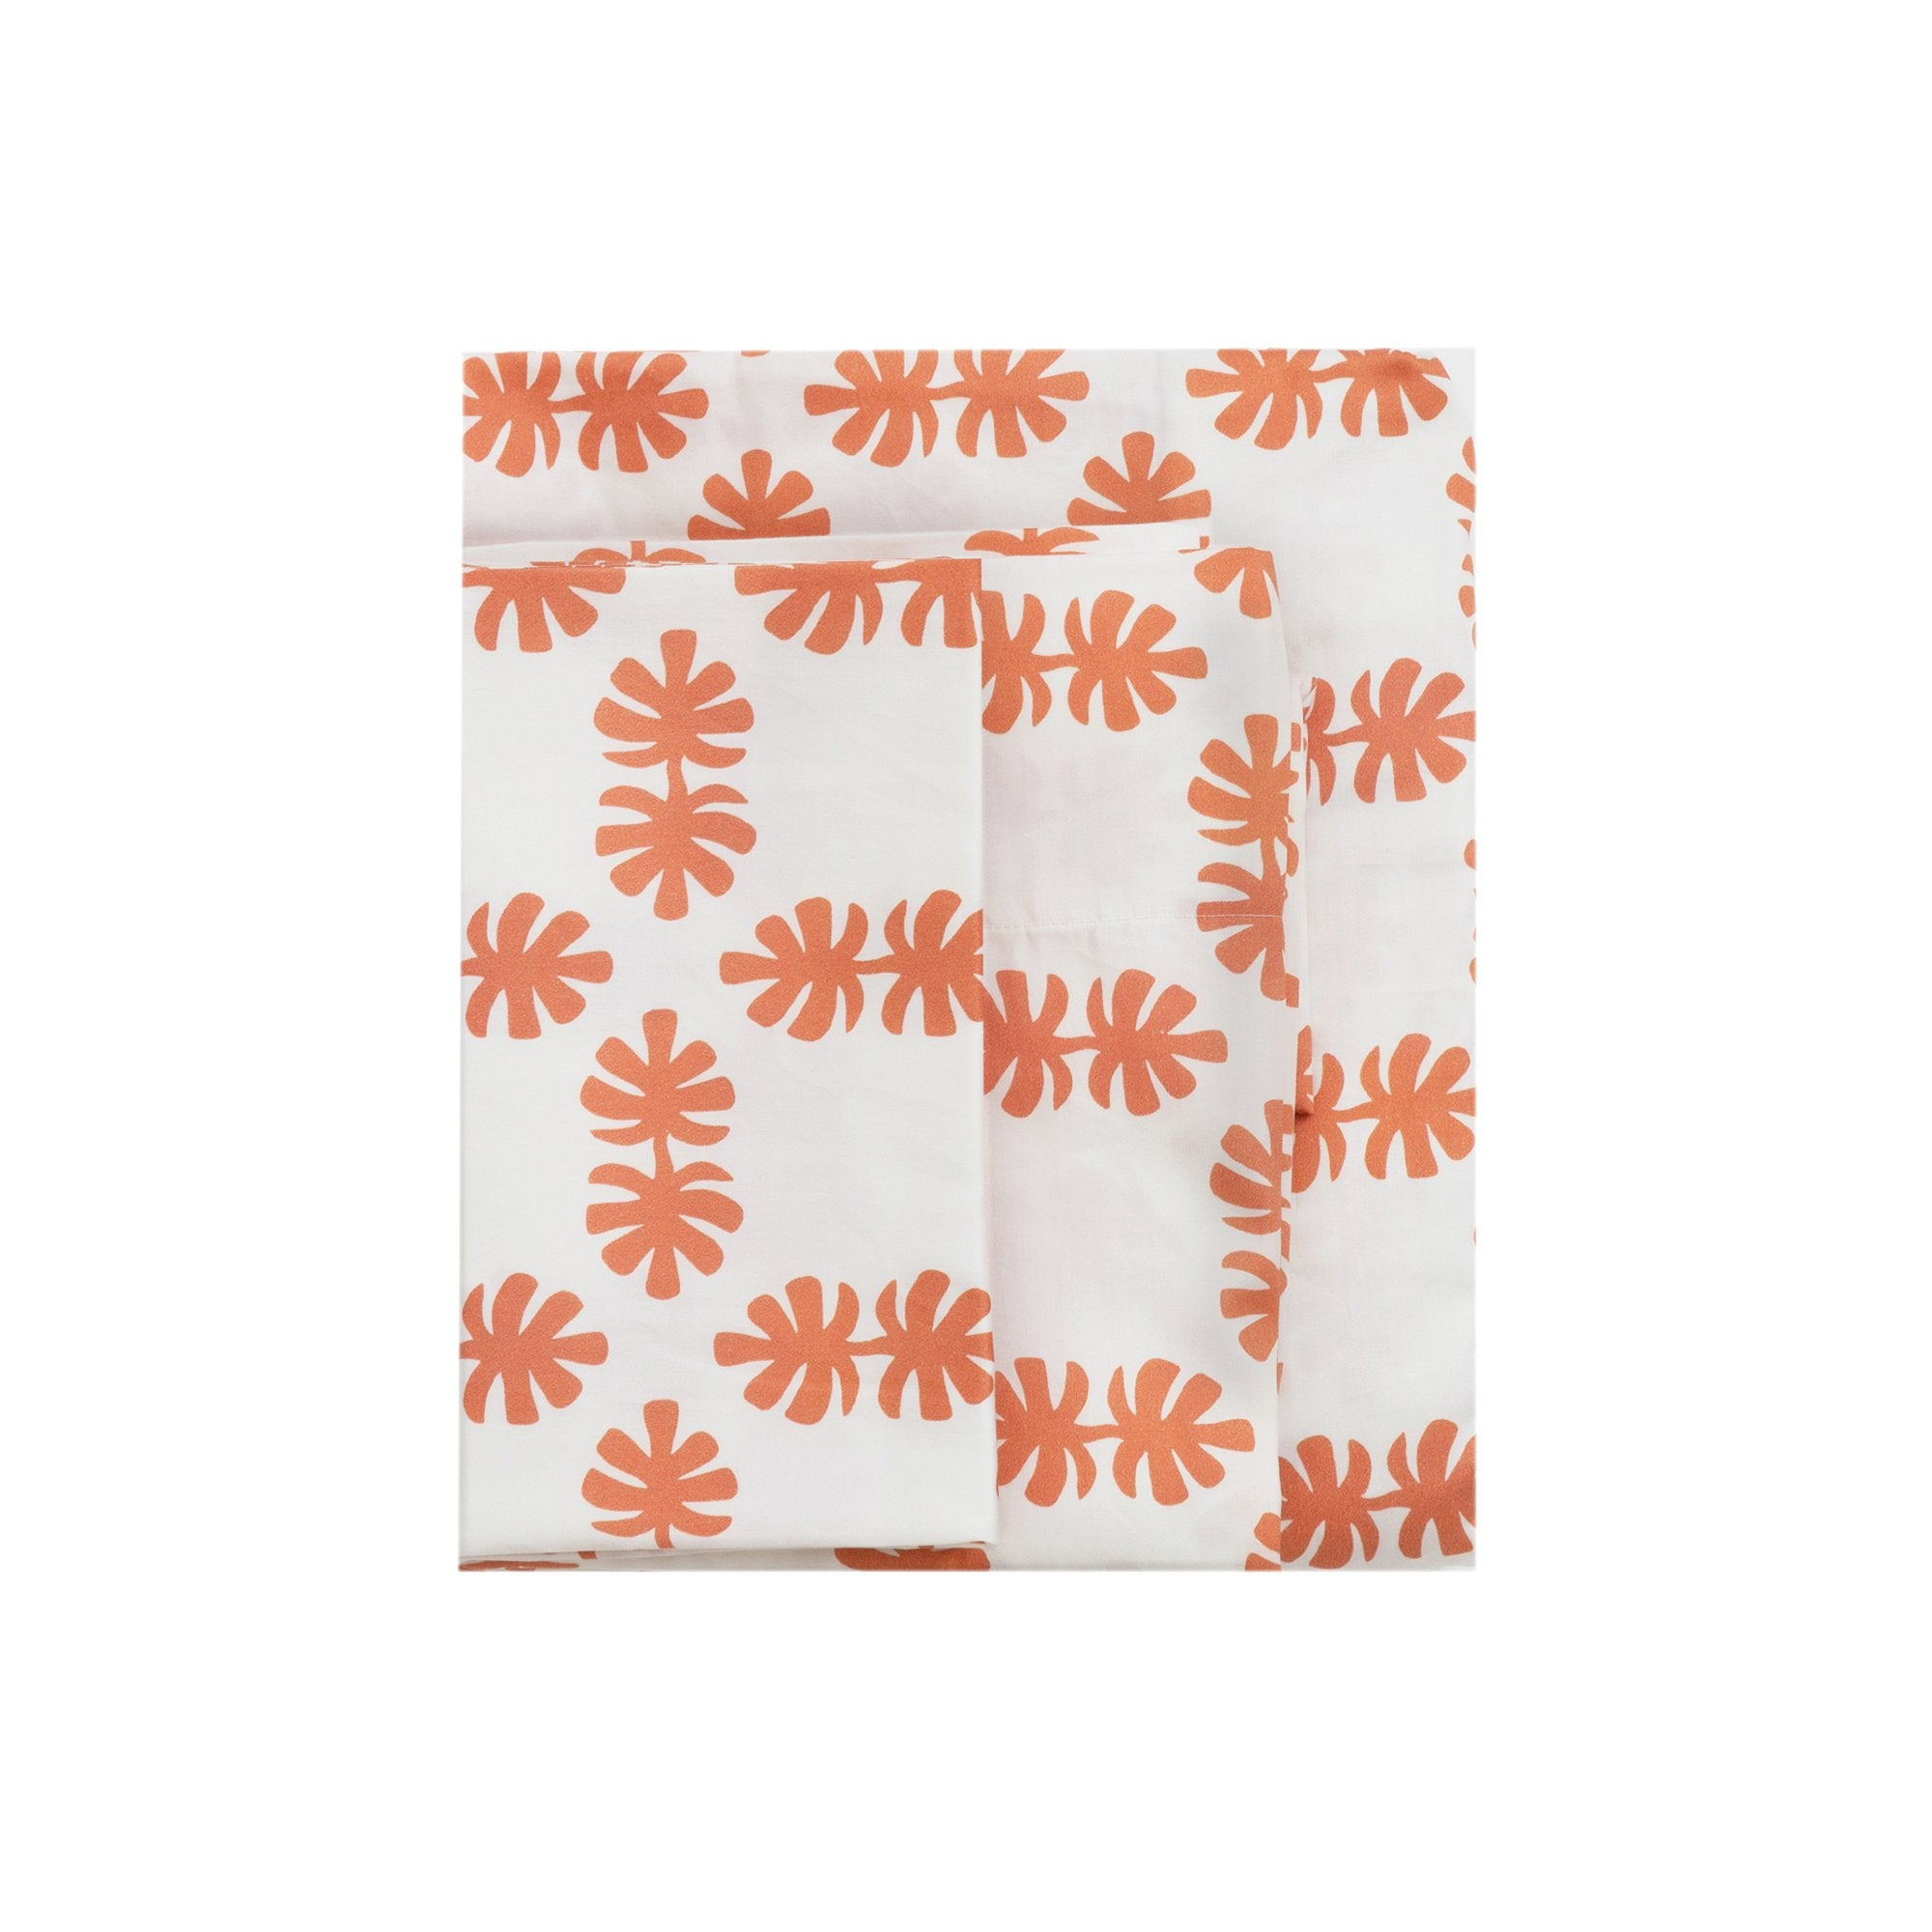 Kikau's Coral Orange Coco Palm kids sheet set on white background